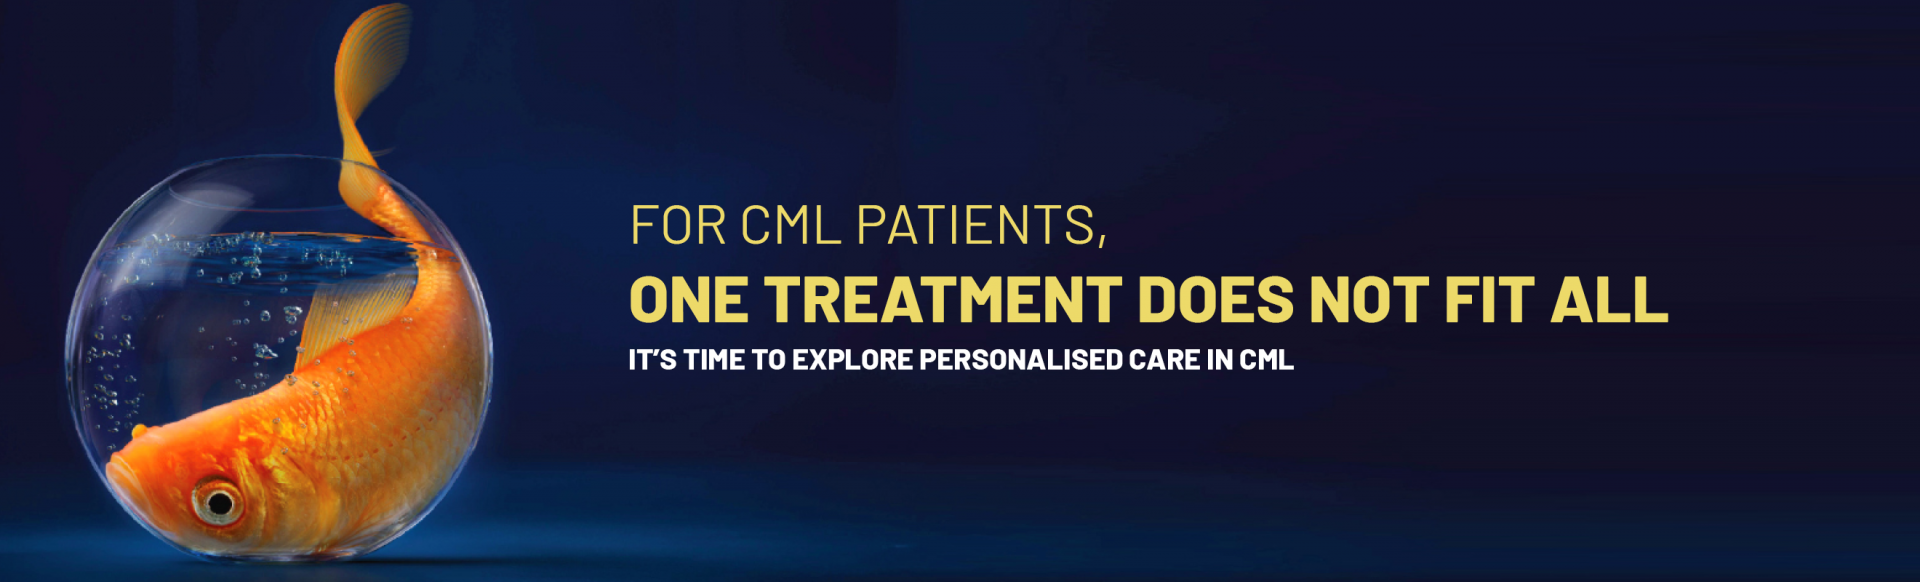 """Top banner: Branded banner showing a goldfish in bowl which is too small for it, with the words """"For CML Patient, one treatment does not fit all. It's time to explore persoinalised care in CML."""""""